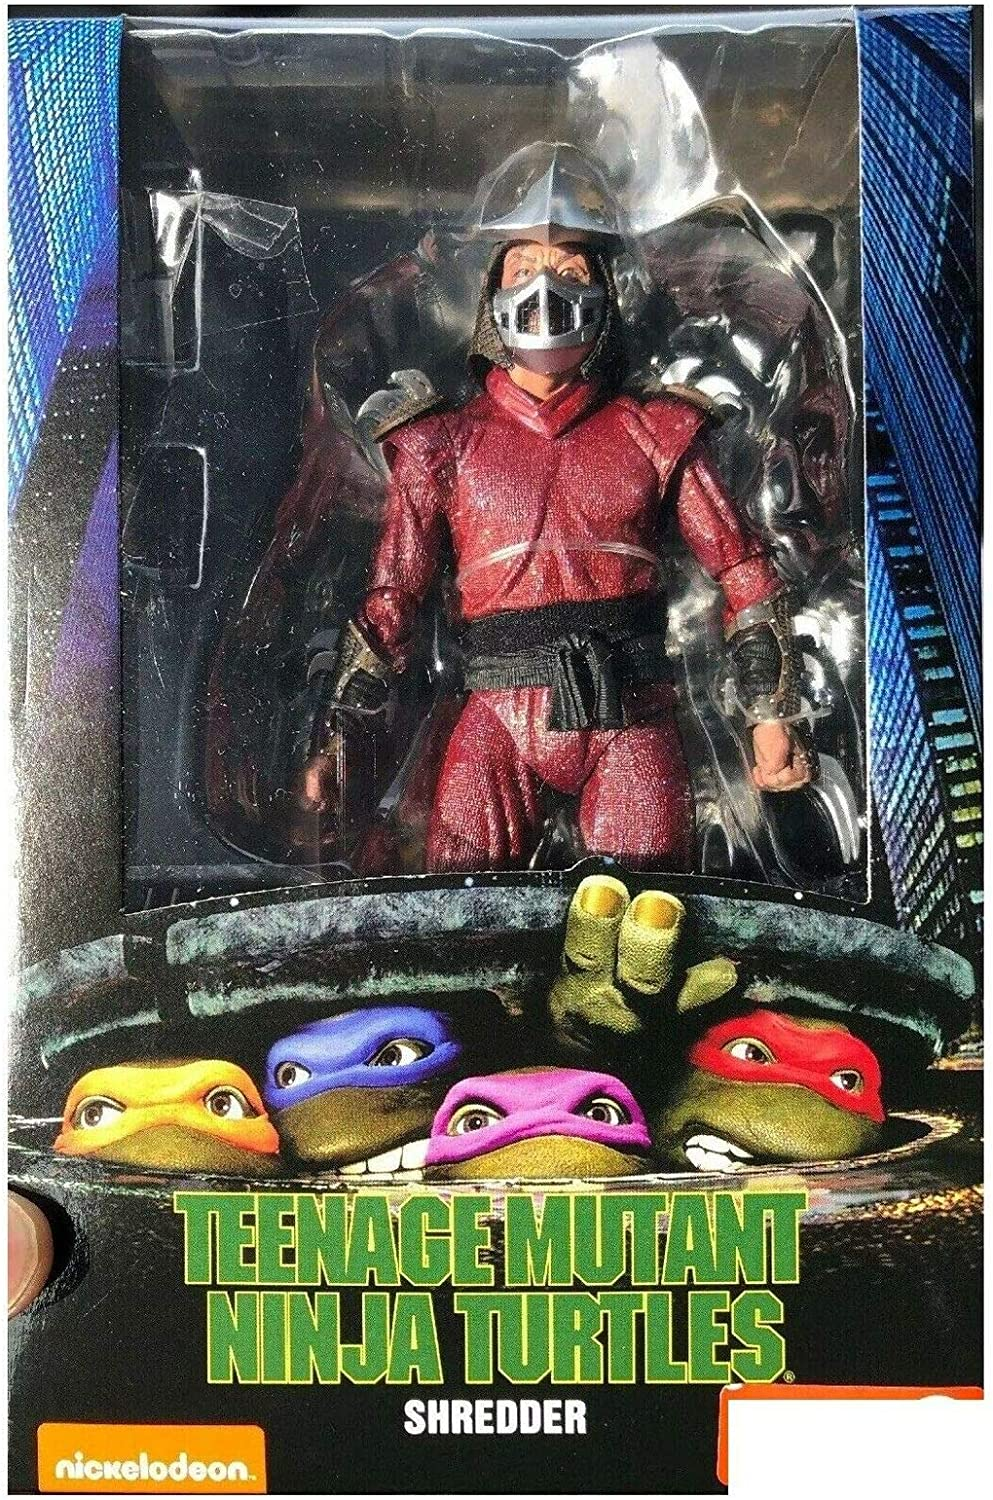 Cheap mail order shopping NECA 634482541098 NECA54109 Max 72% OFF Action Figure